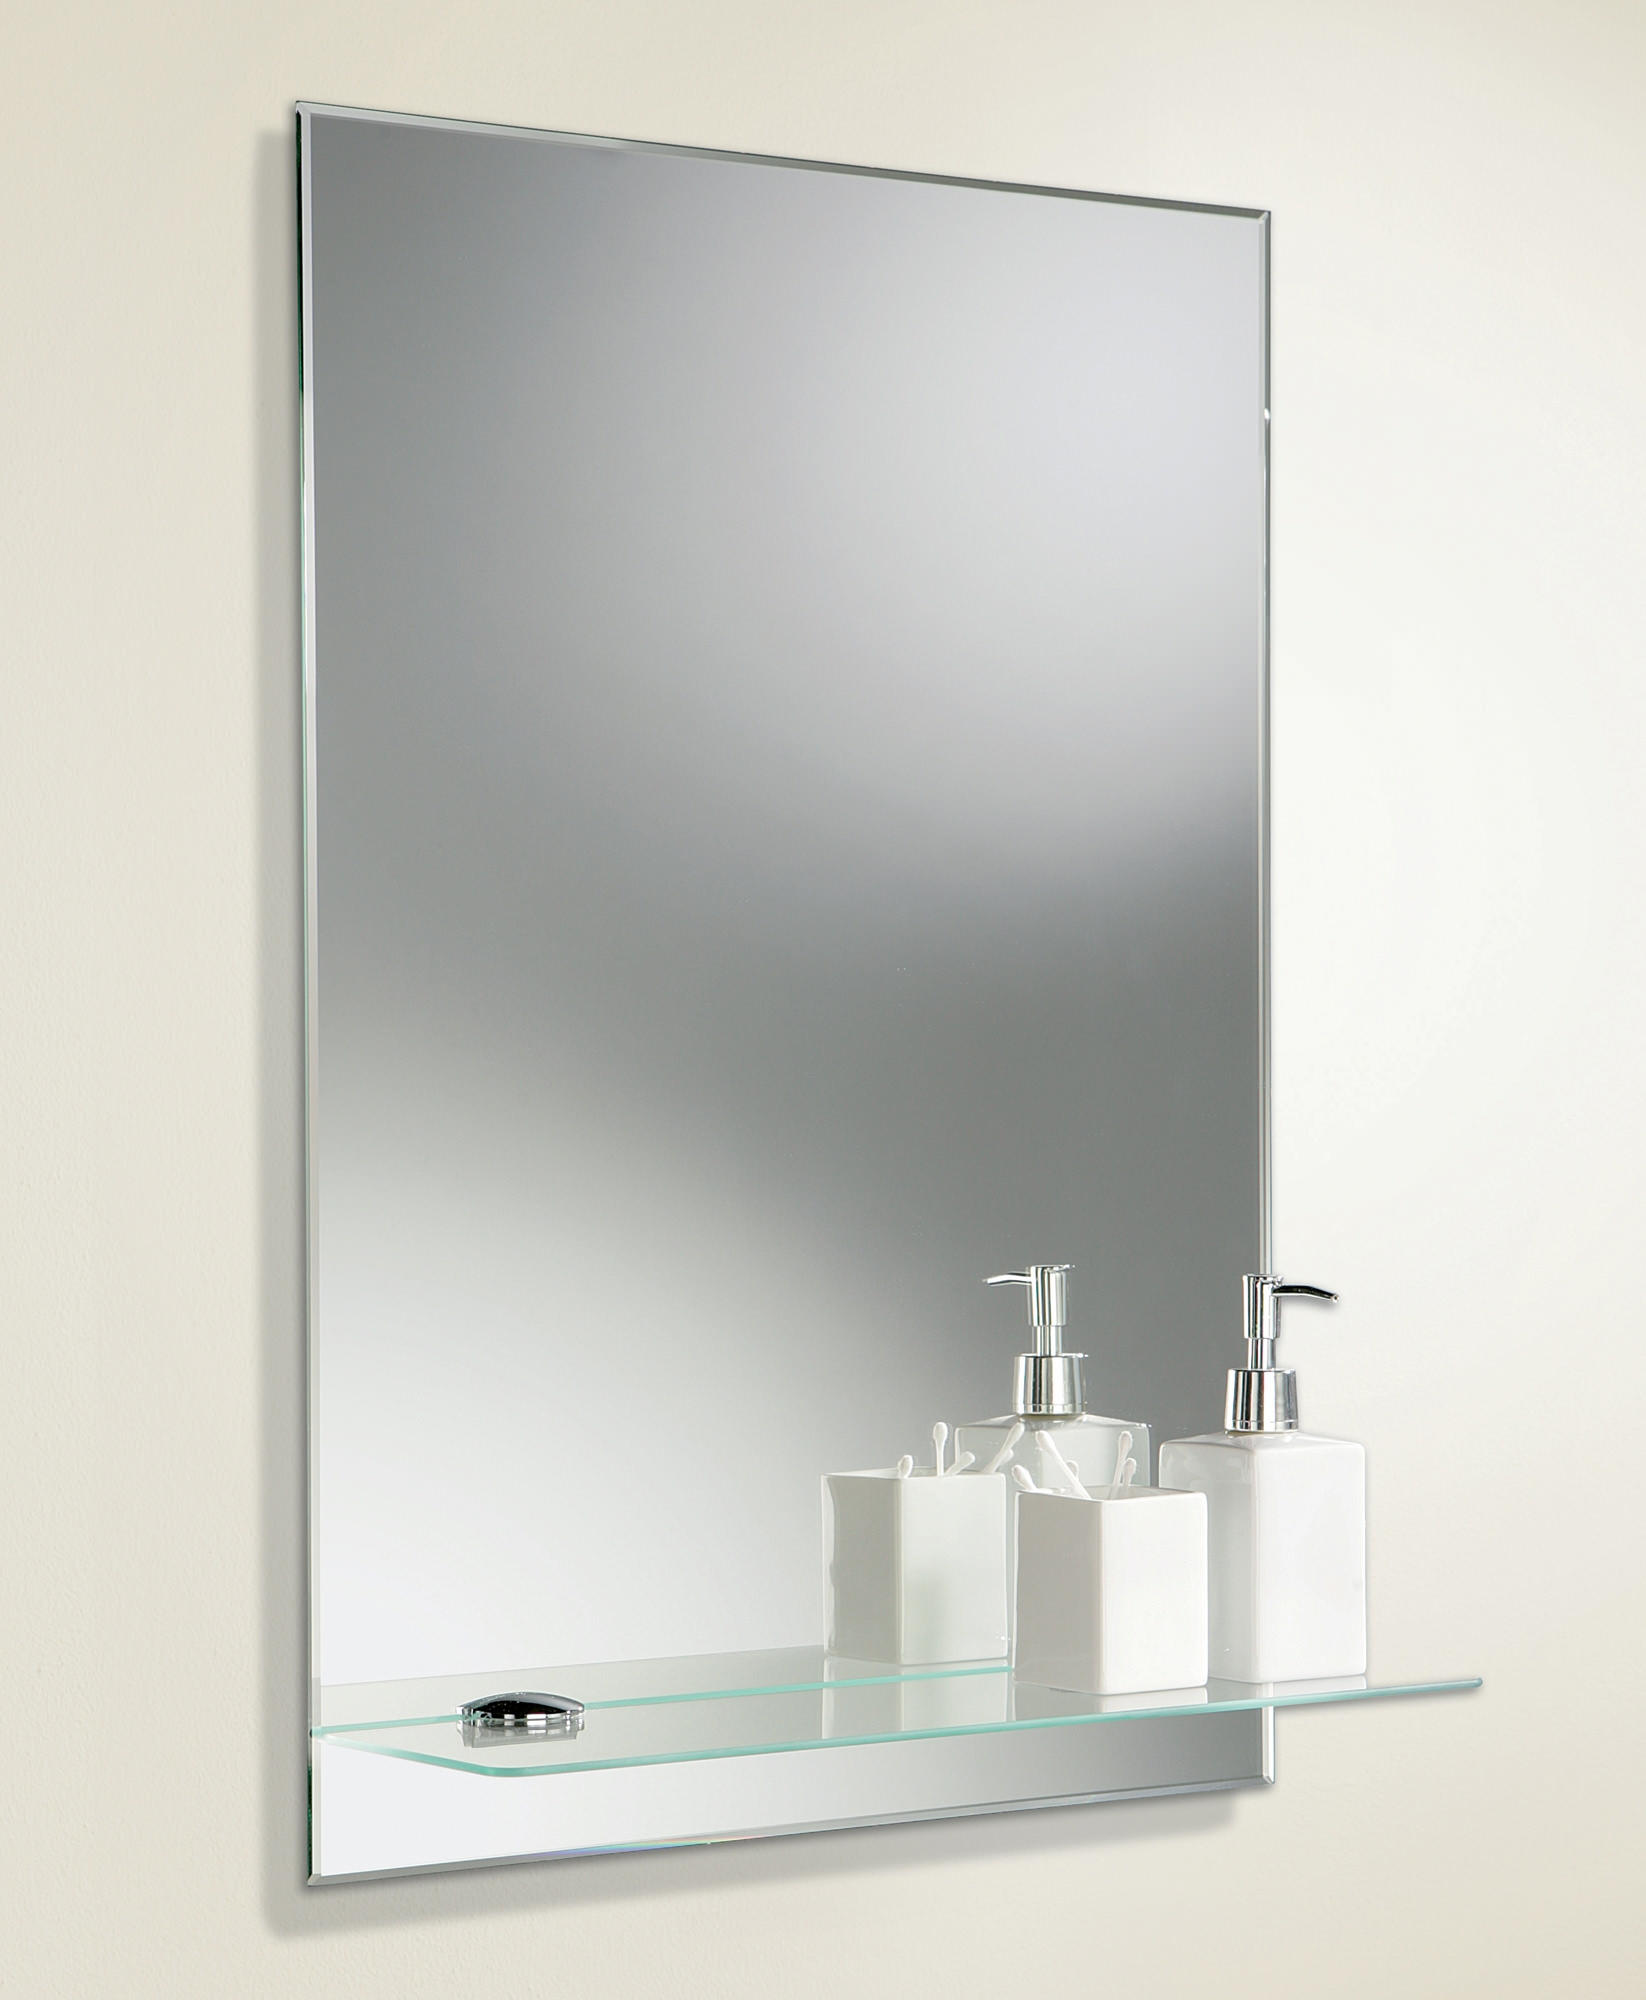 Hib Del Rectangular Bevelled Edge Mirror With Glass Shelf 72026000 Pertaining To Bevelled Glass Mirror (View 9 of 15)